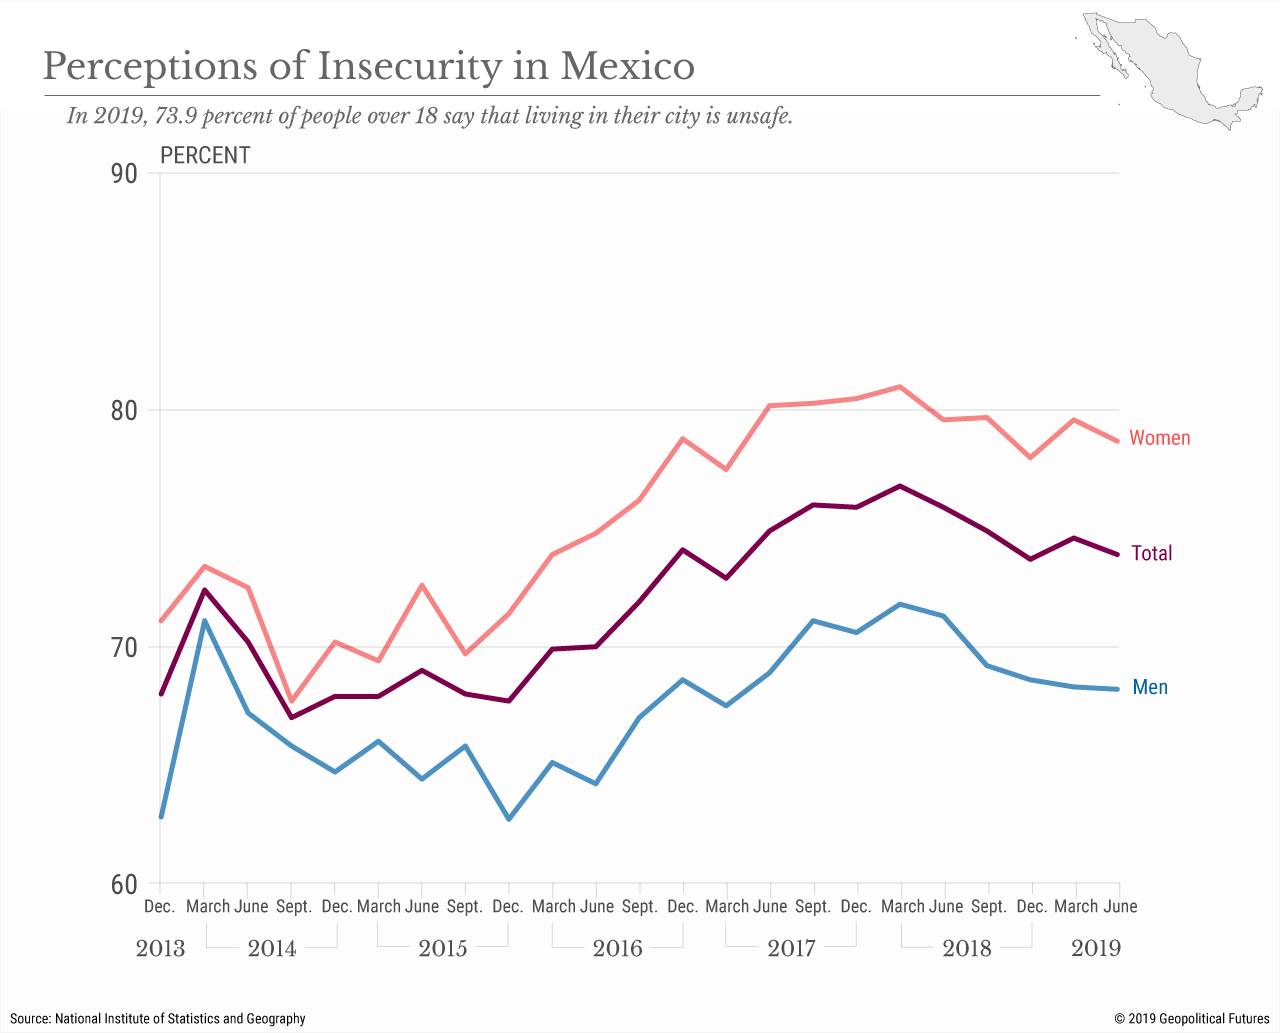 Perceptions of Insecurity in Mexico